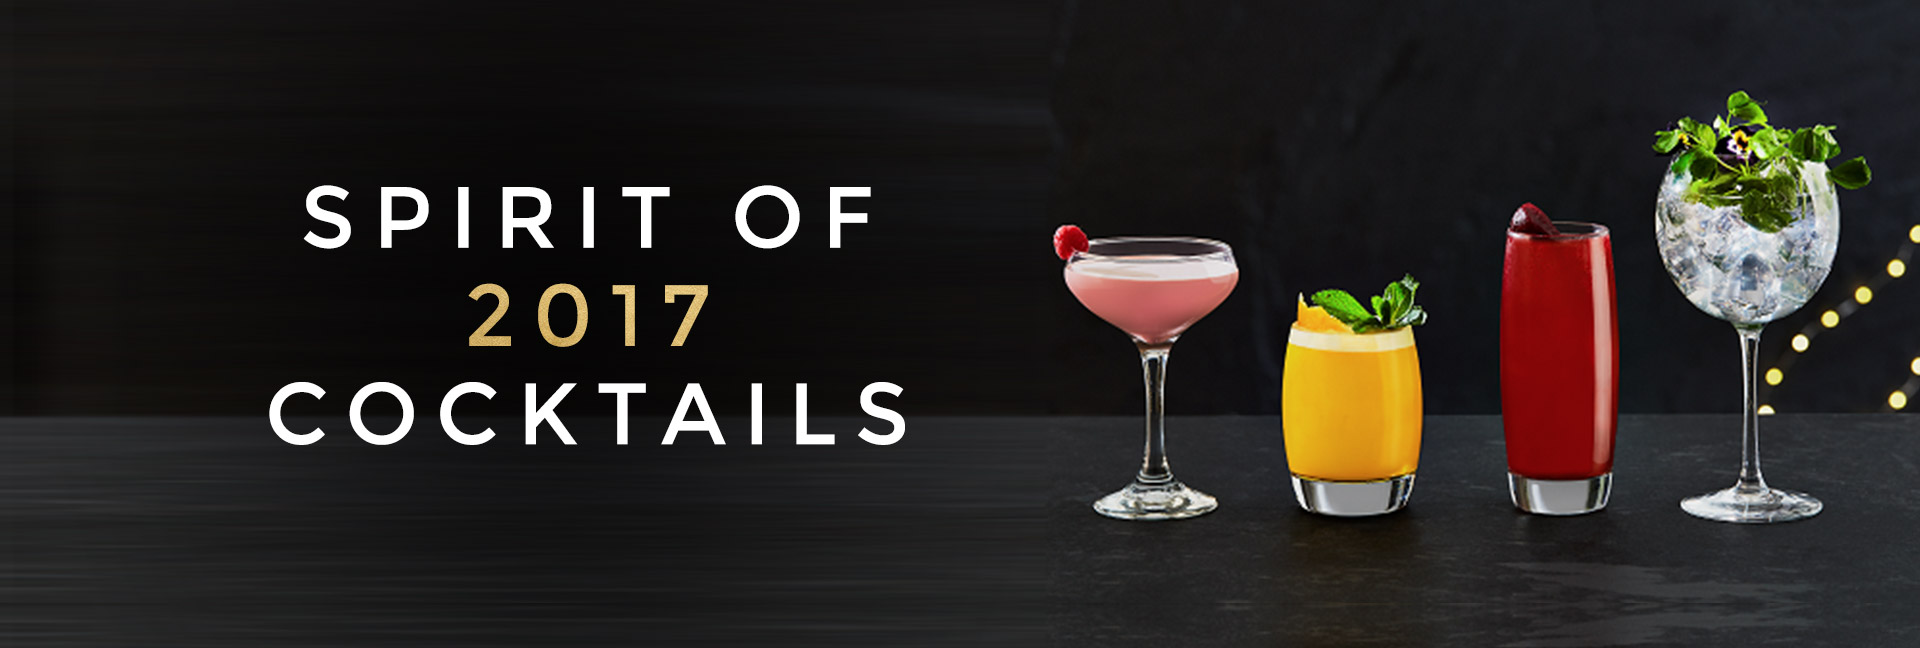 Spirit of 2017 cocktails at Chiswick